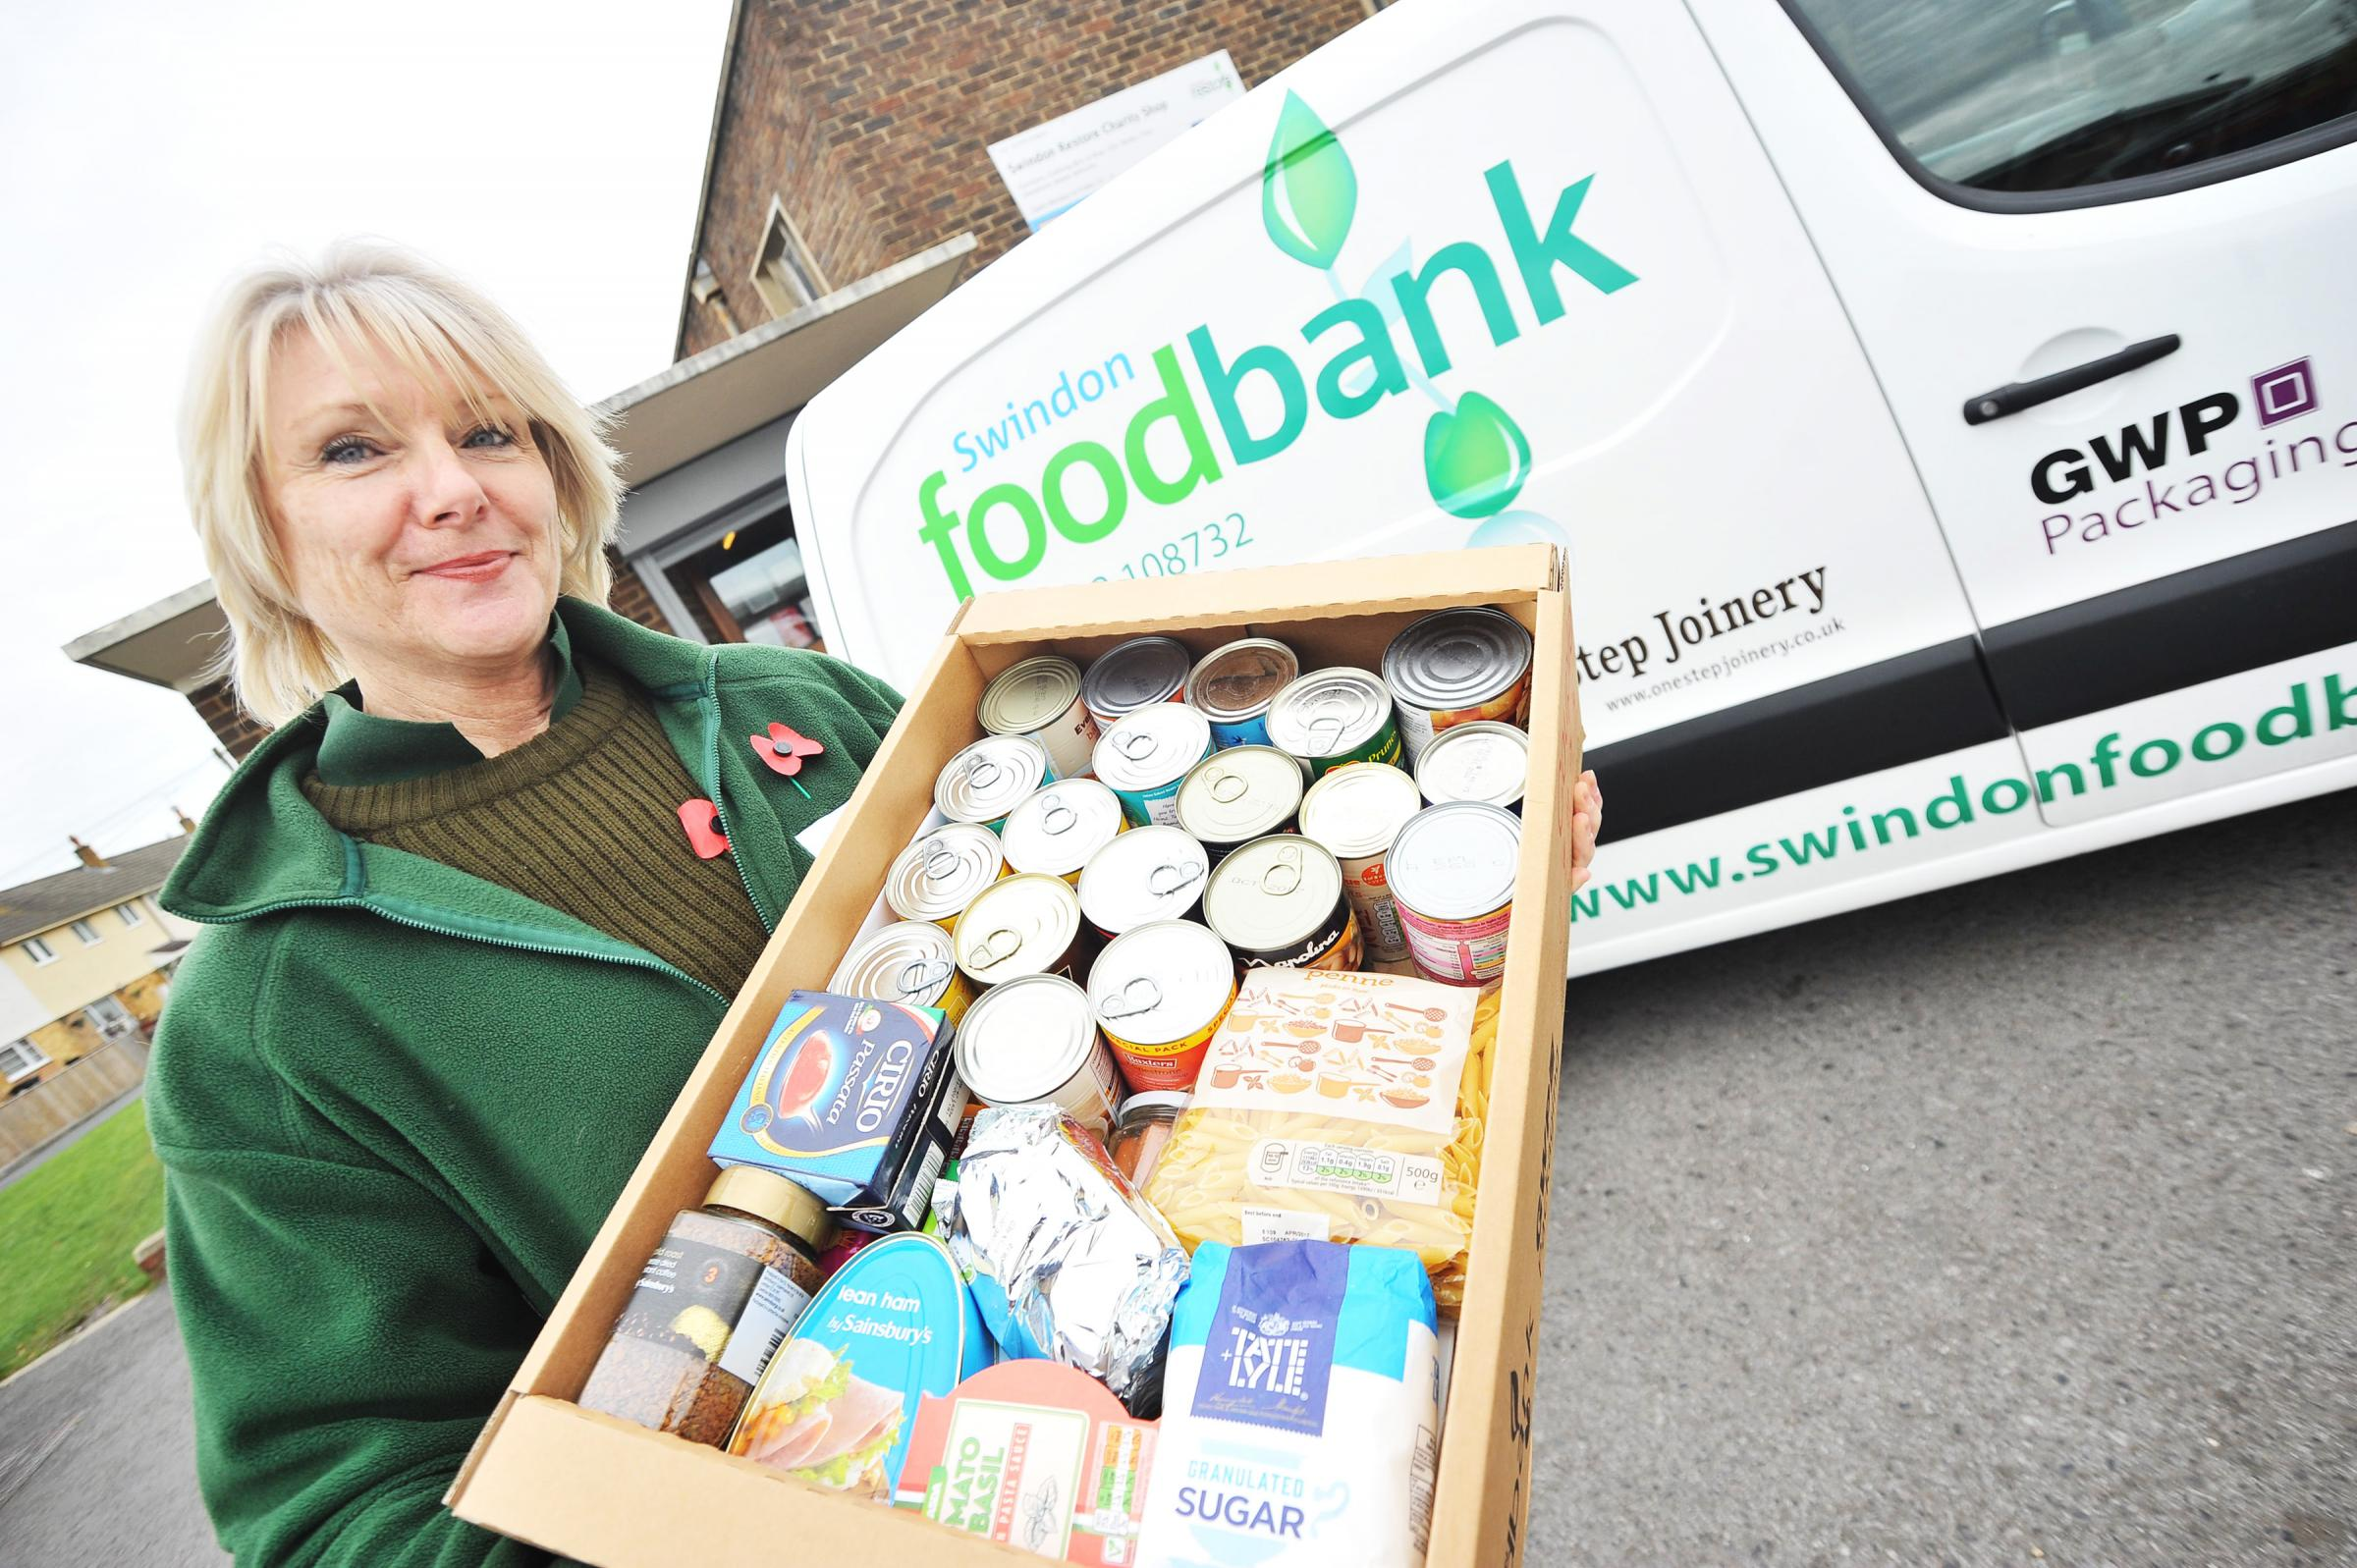 Fury as Swindon's foodbank reveals it could close in 10 days